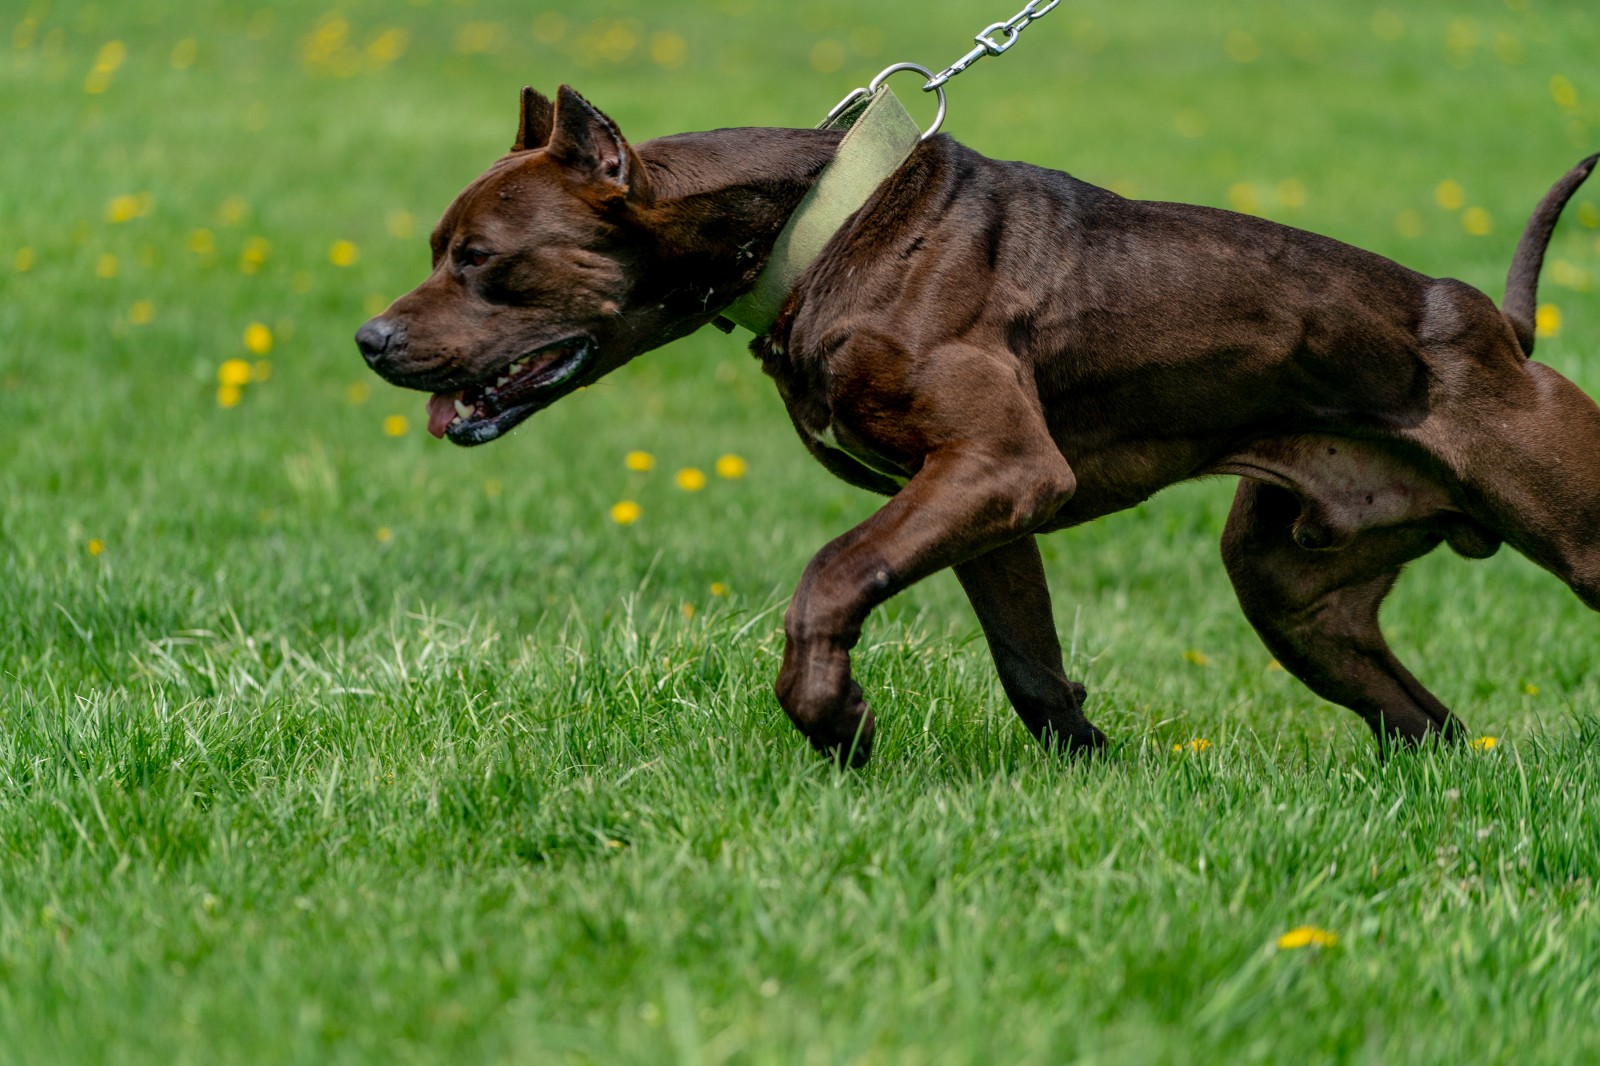 Hitman, a black XL pitbull from Unleashed kennelz lunges, ripped muscles flexed, in a side profile shot with his owner holding him by the green collar and chain link leash.